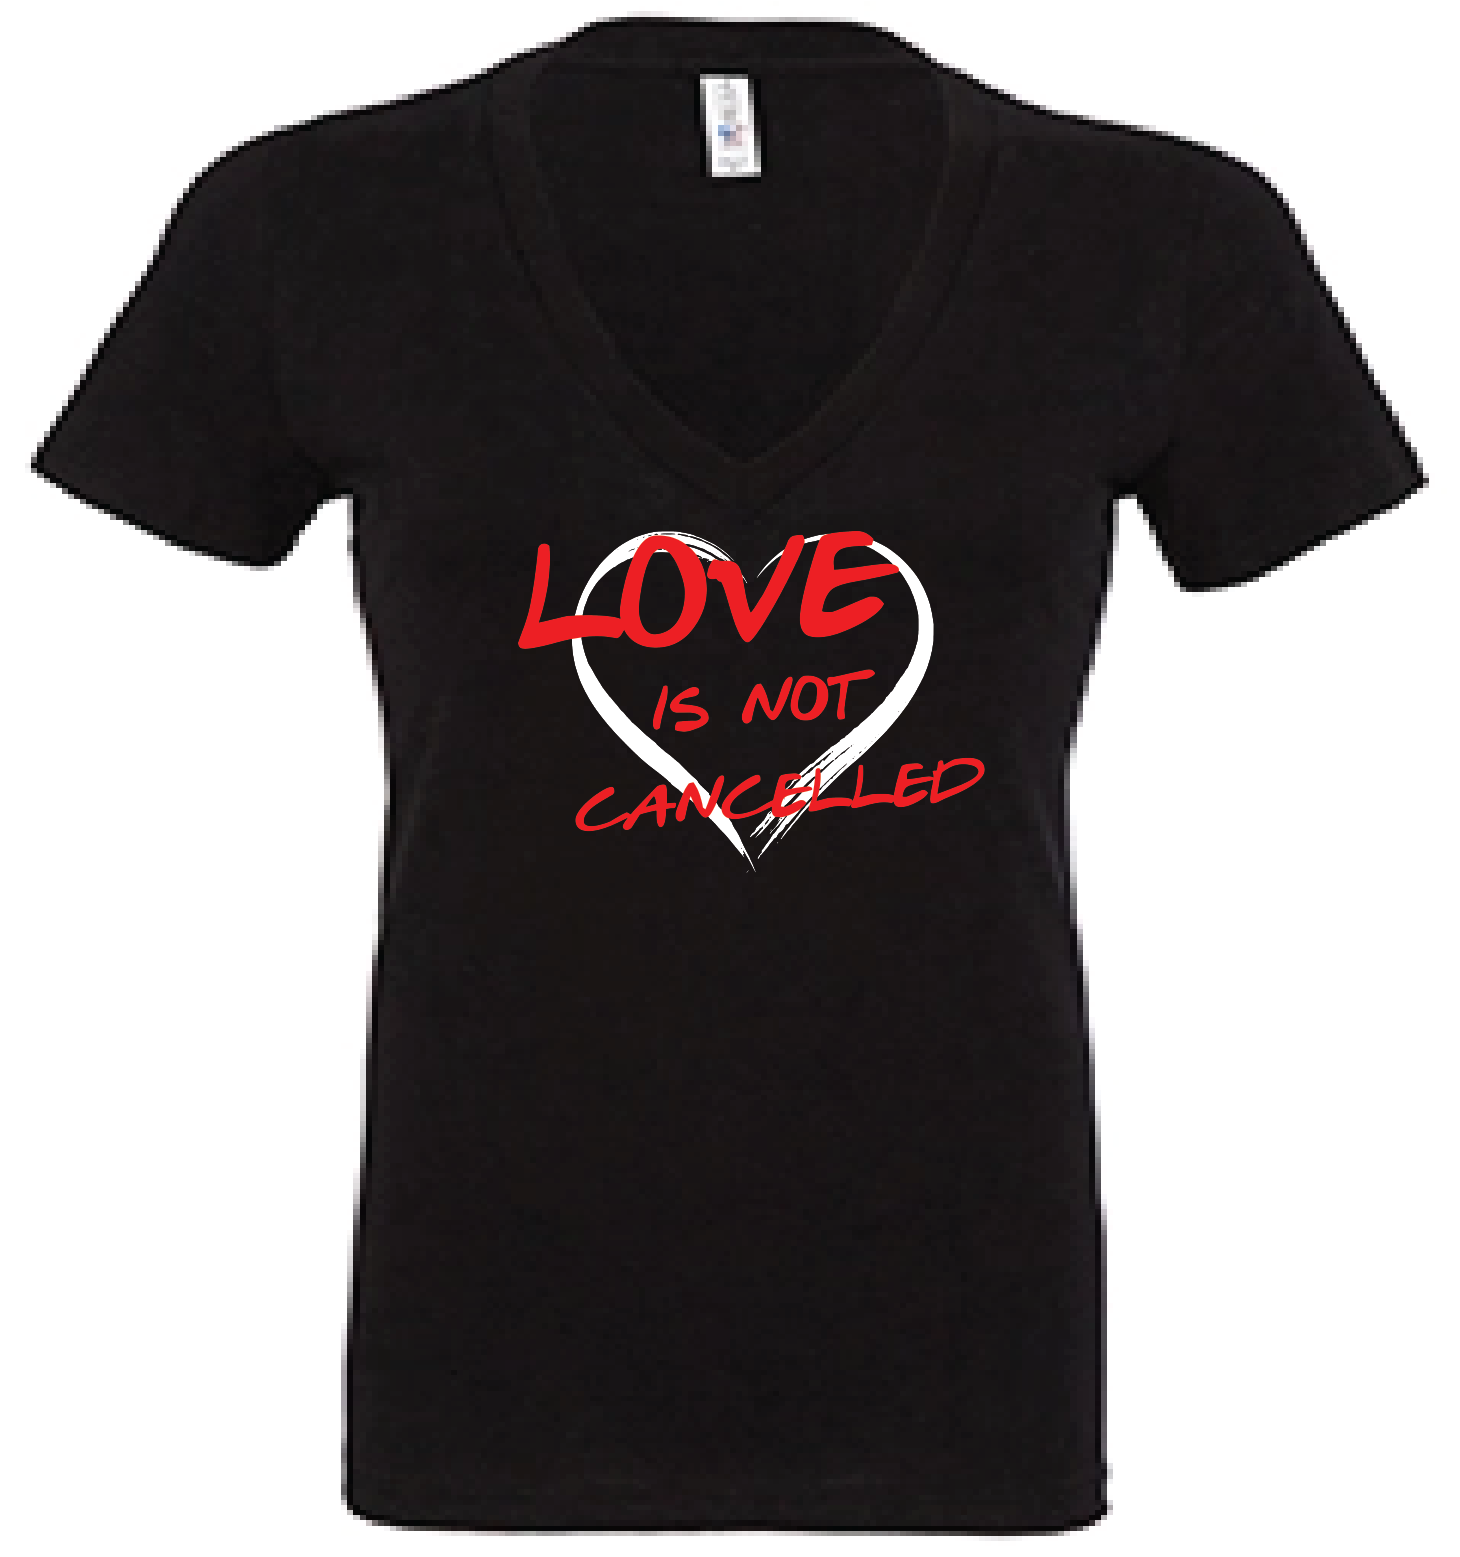 Love is not cancelled tee